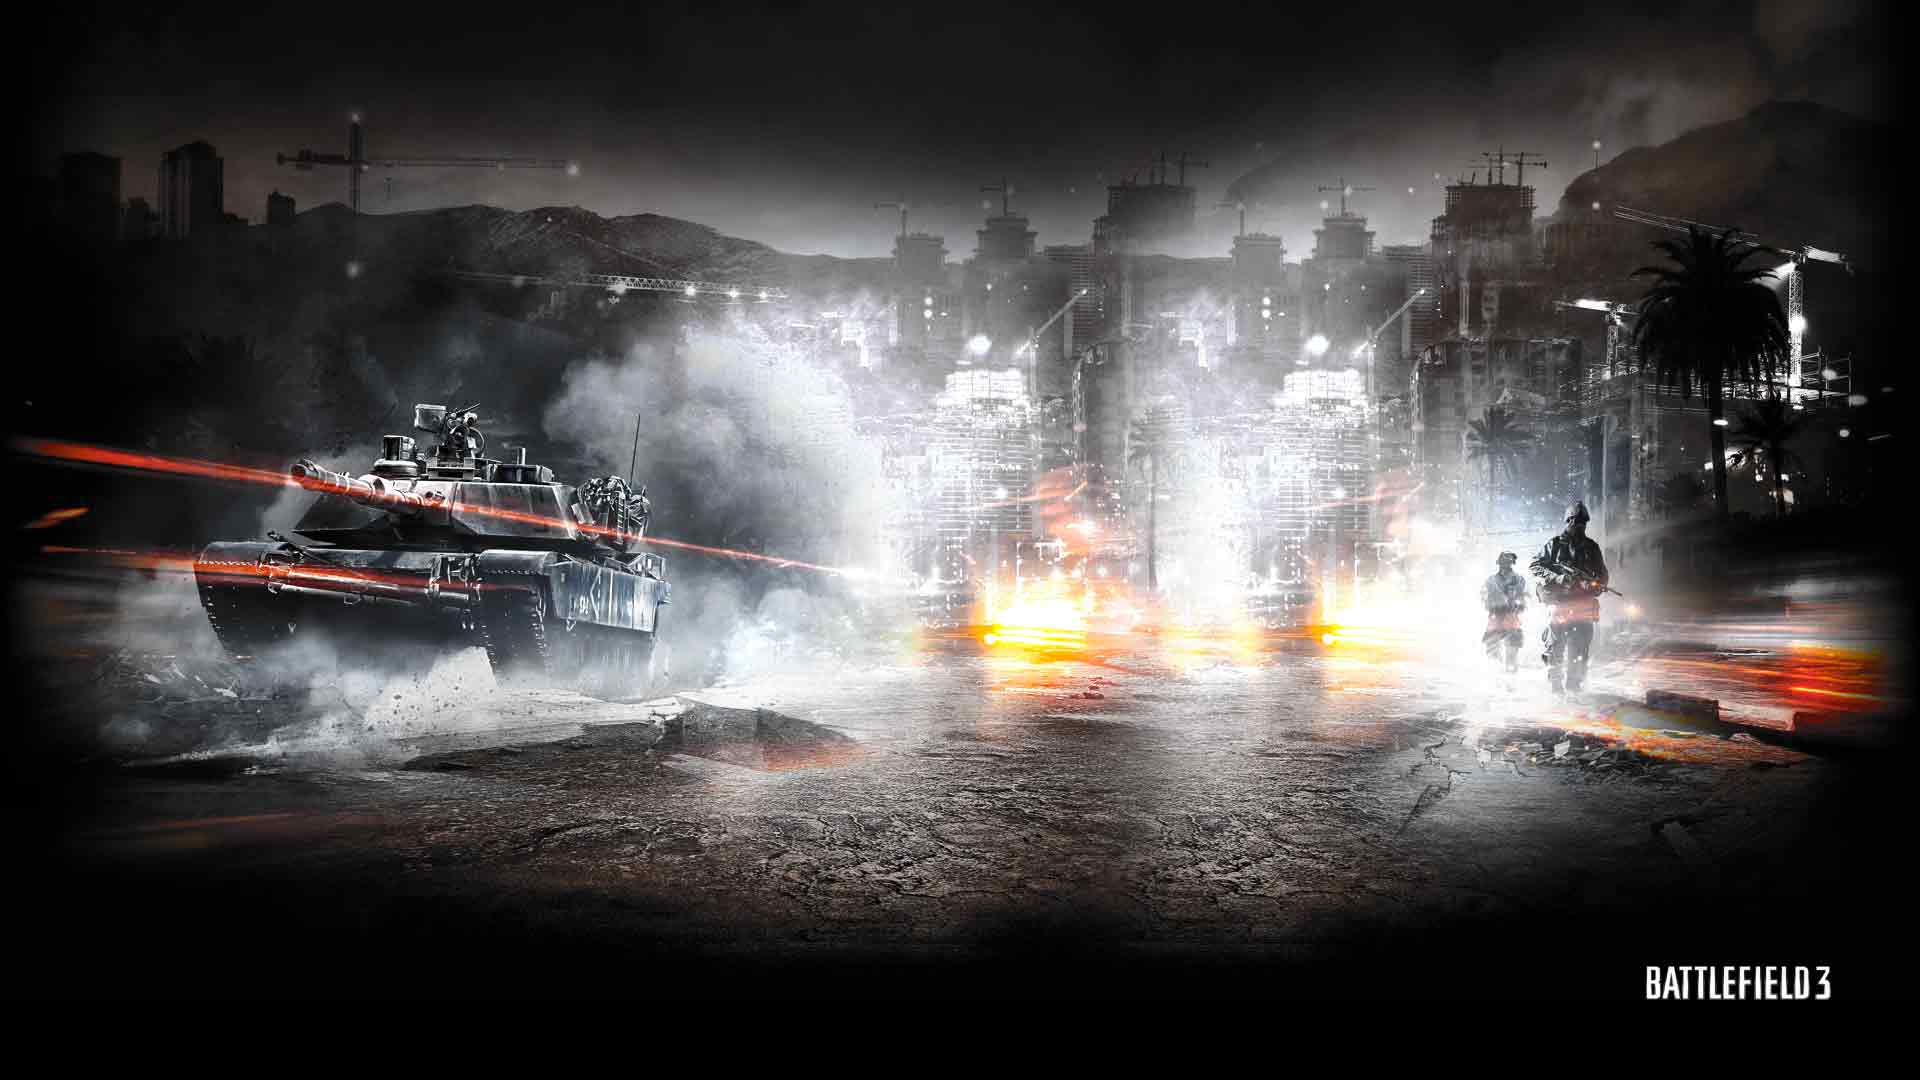 battlefield 3 wallpaper 1080p - wallpapersafari